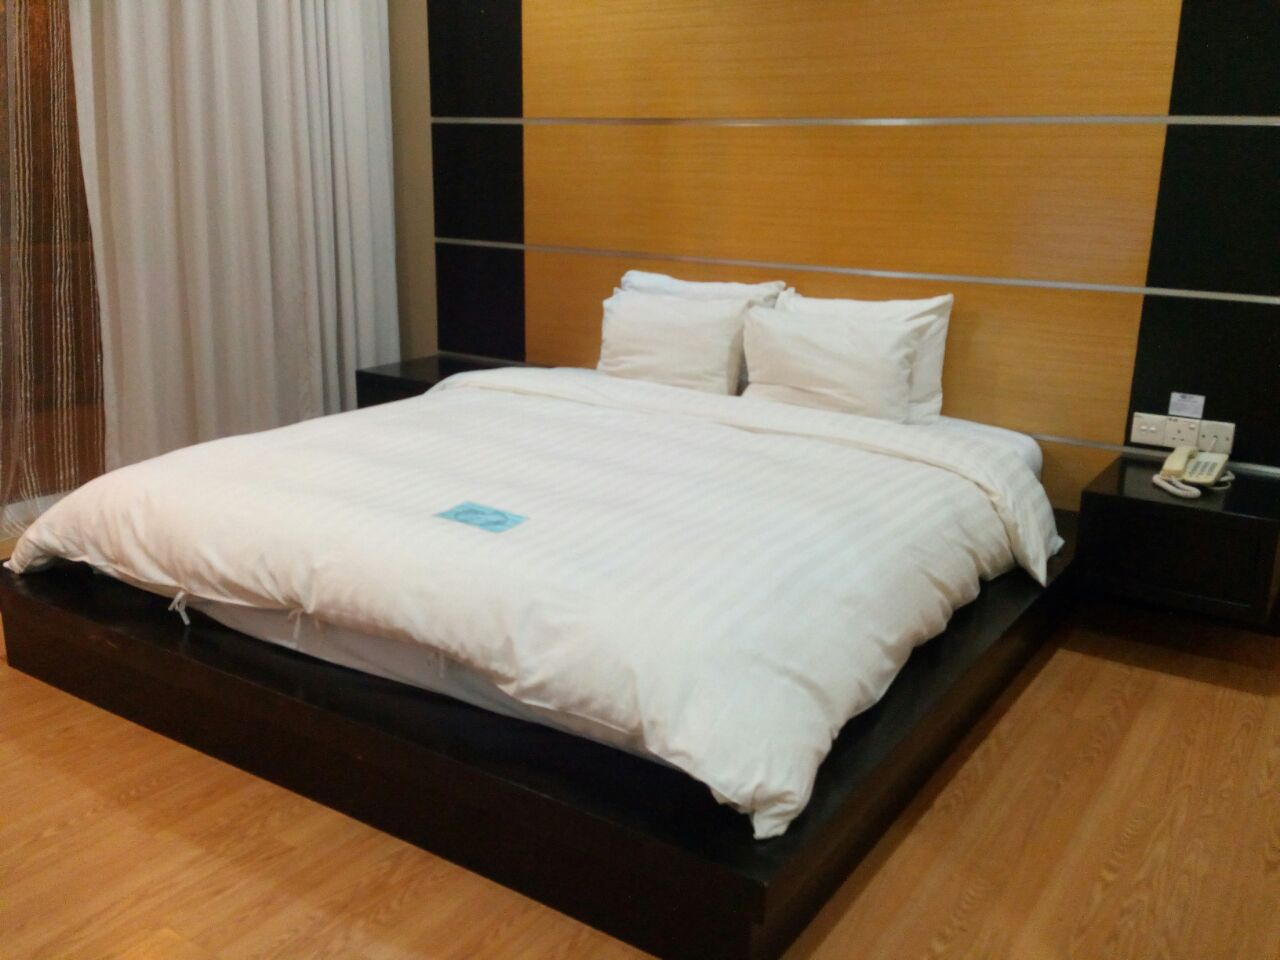 Standard Room Queen Bed2